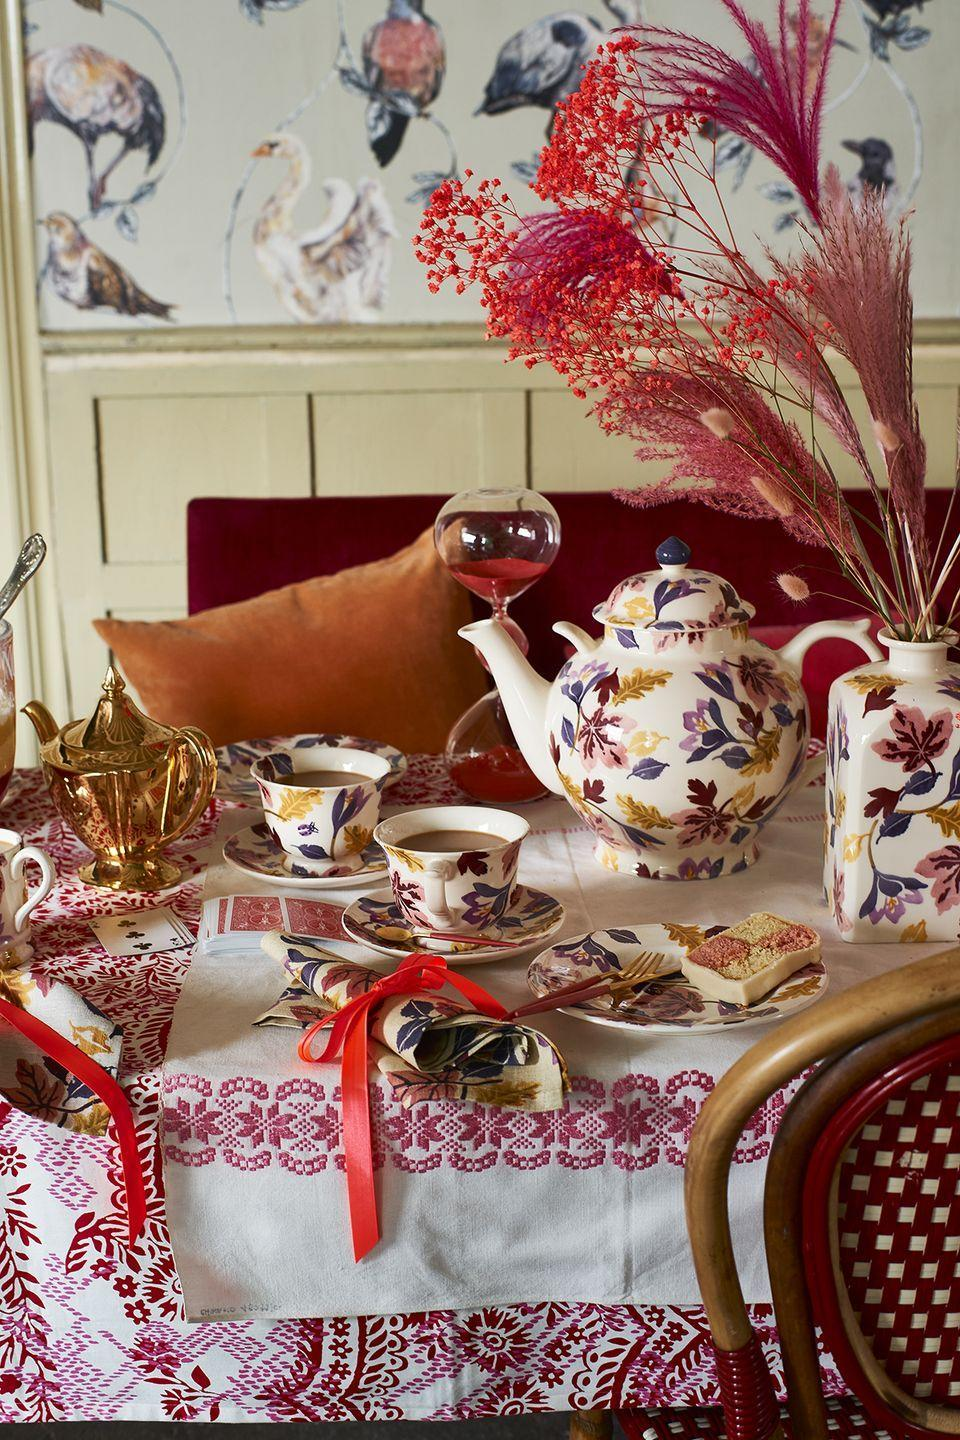 """<p>Available to snap up now, you'll find everything you need for hosting your own tea party. Whether you're after a new mug, serving dish or tablecloth, there's something in the new collection for everyone.</p><p><a class=""""link rapid-noclick-resp"""" href=""""https://go.redirectingat.com?id=127X1599956&url=https%3A%2F%2Fwww.emmabridgewater.co.uk%2Fsearch%3Fview%3Dspring%26q%3DAutumn%2B%25EF%25BB%25BFCrocus&sref=https%3A%2F%2Fwww.housebeautiful.com%2Fuk%2Flifestyle%2Fshopping%2Fg37527696%2Femma-bridgewater-autumn-range%2F"""" rel=""""nofollow noopener"""" target=""""_blank"""" data-ylk=""""slk:SHOP THE RANGE"""">SHOP THE RANGE</a></p>"""